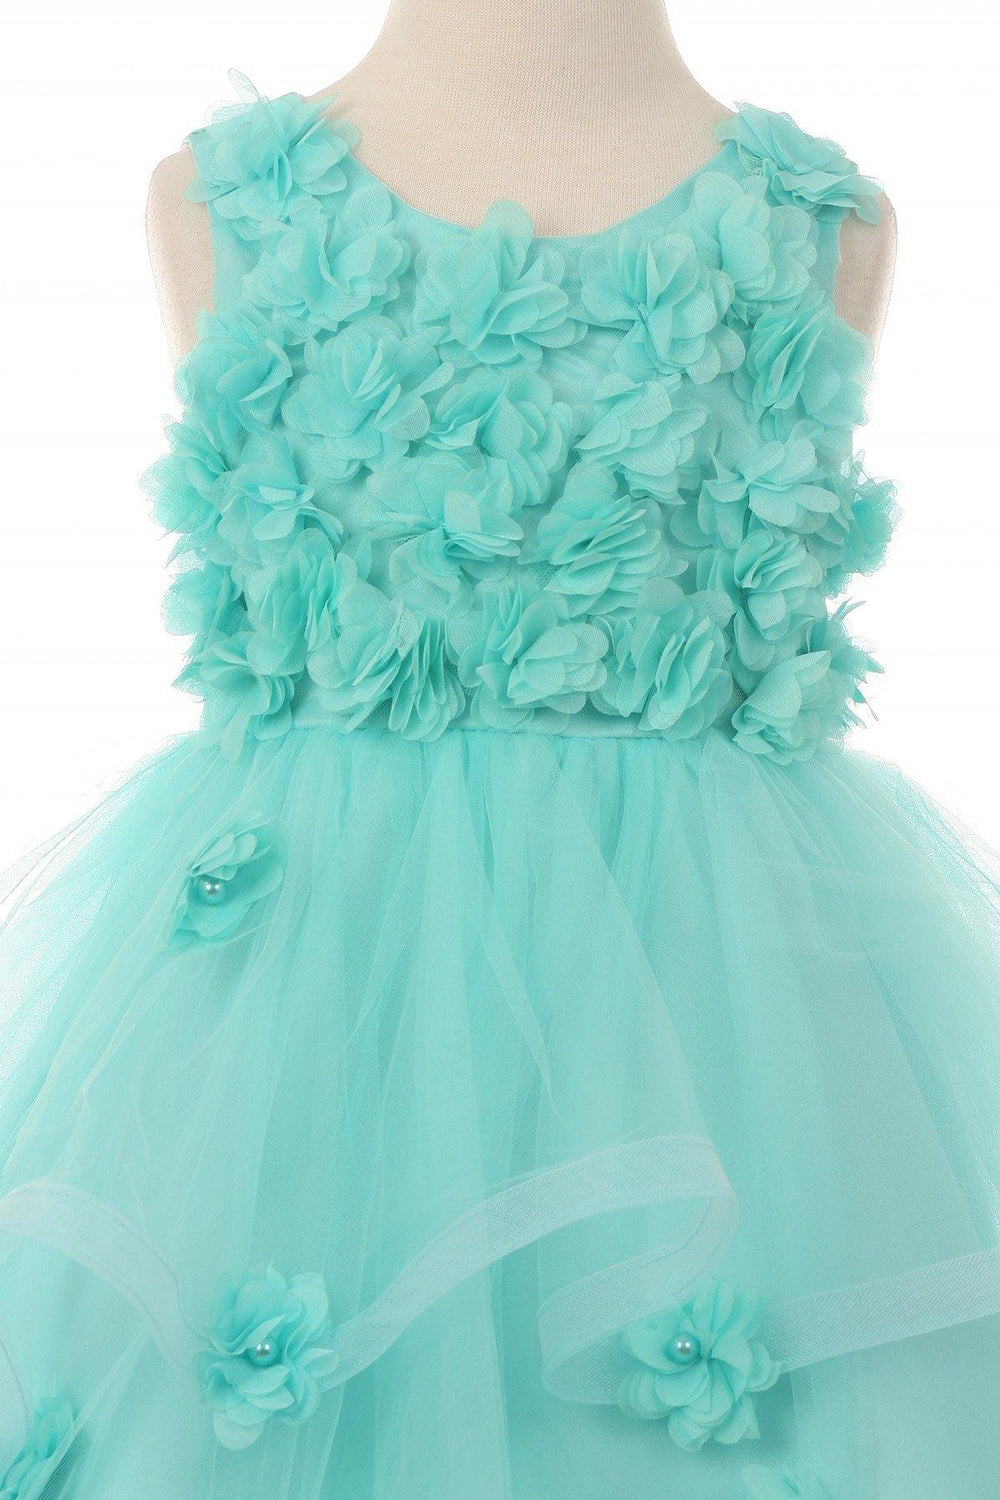 Sleeveless Embellished Short Party Flower Girls Dress - The Dress Outlet